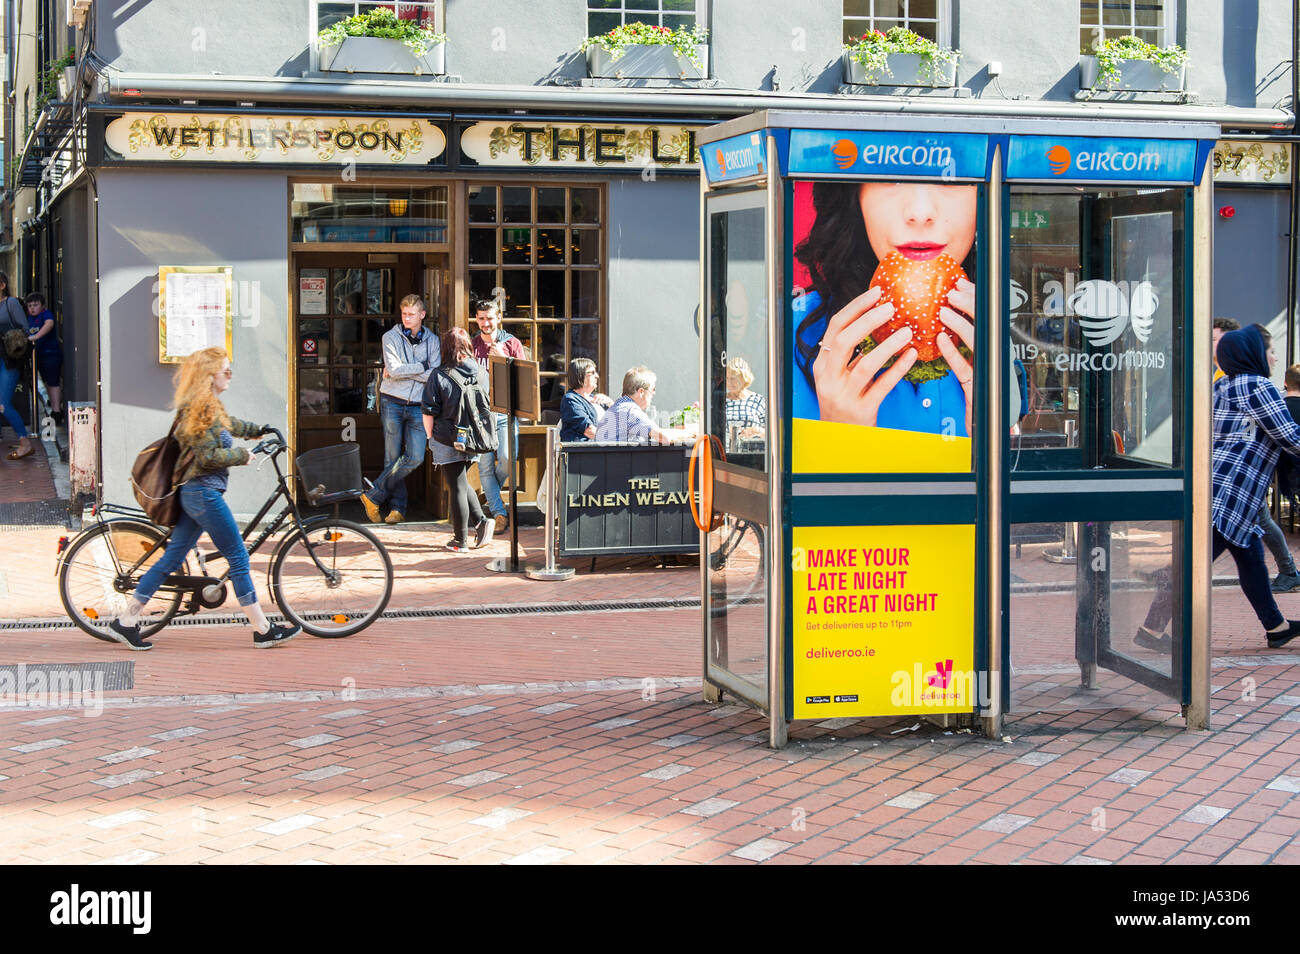 deliveroo-advert-on-a-public-telephone-phone-box-in-cork-ireland-with-JA53D6.jpg